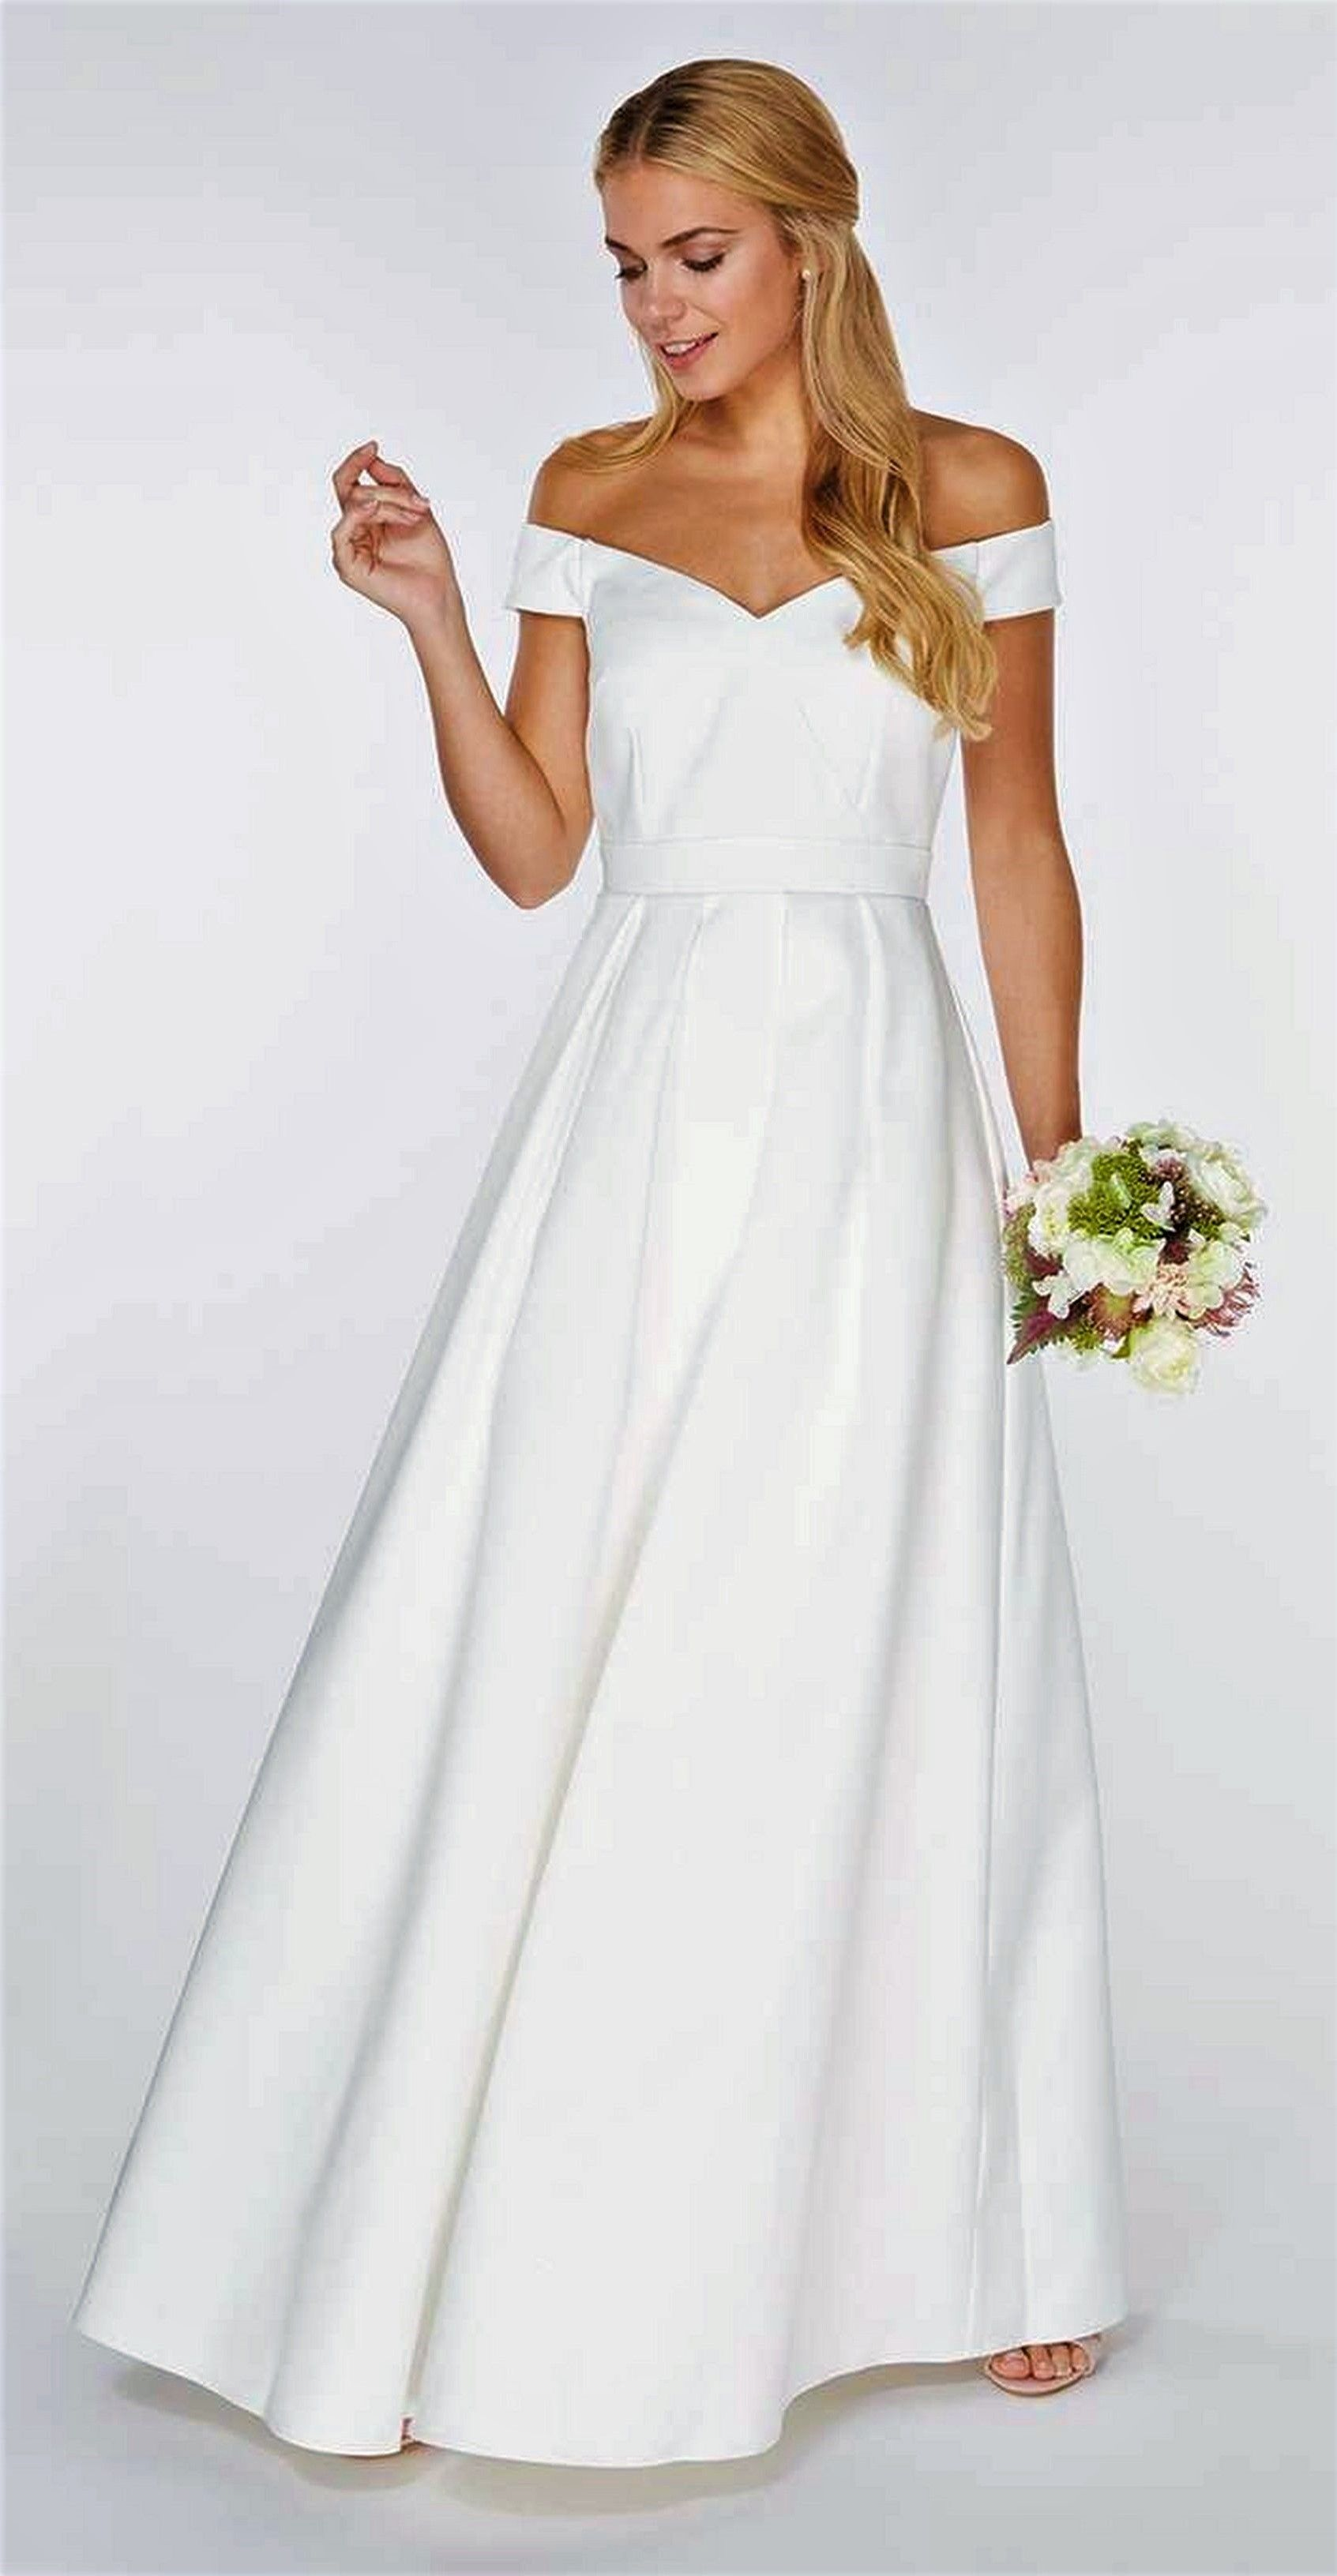 Fab Uk High Street Valentina Wedding Dress 12950 From Dorothy